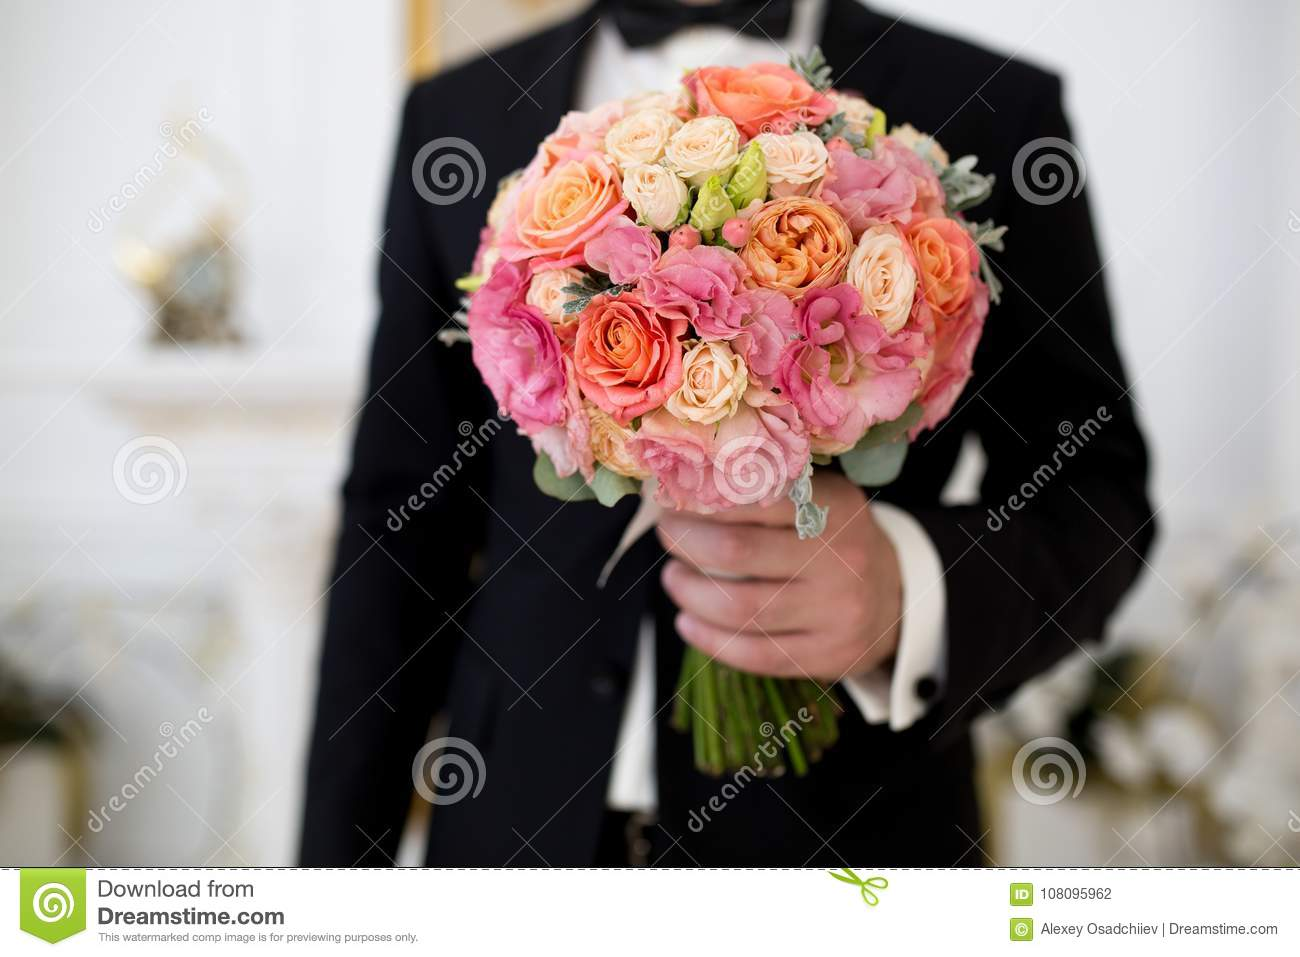 Man with flower bouquet stock photo image of blossom 108095962 man with flower bouquet izmirmasajfo Gallery